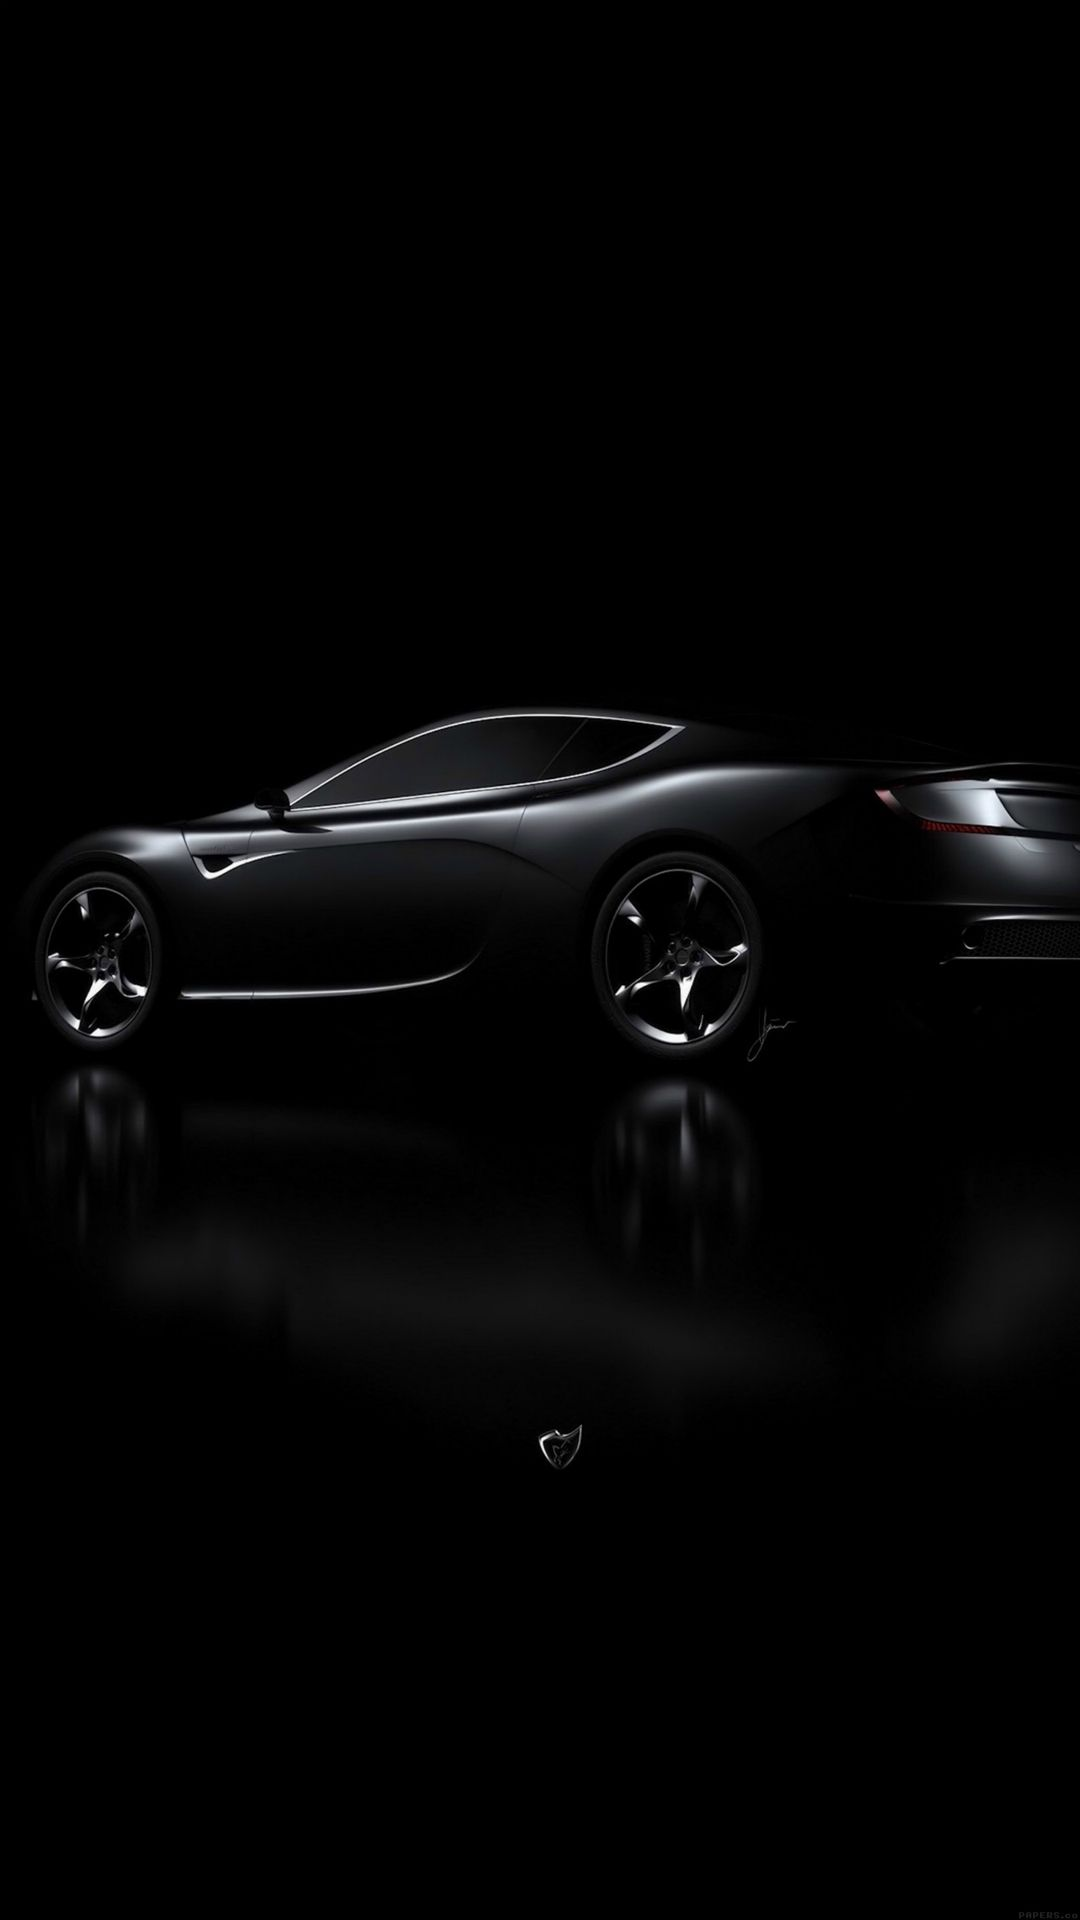 Aston Martin Black Car Dark Iphone 6 Wallpaper Download Iphone Wallpapers Ipad Wallpapers One Stop Download Black Car Black Car Wallpaper Car Wallpapers